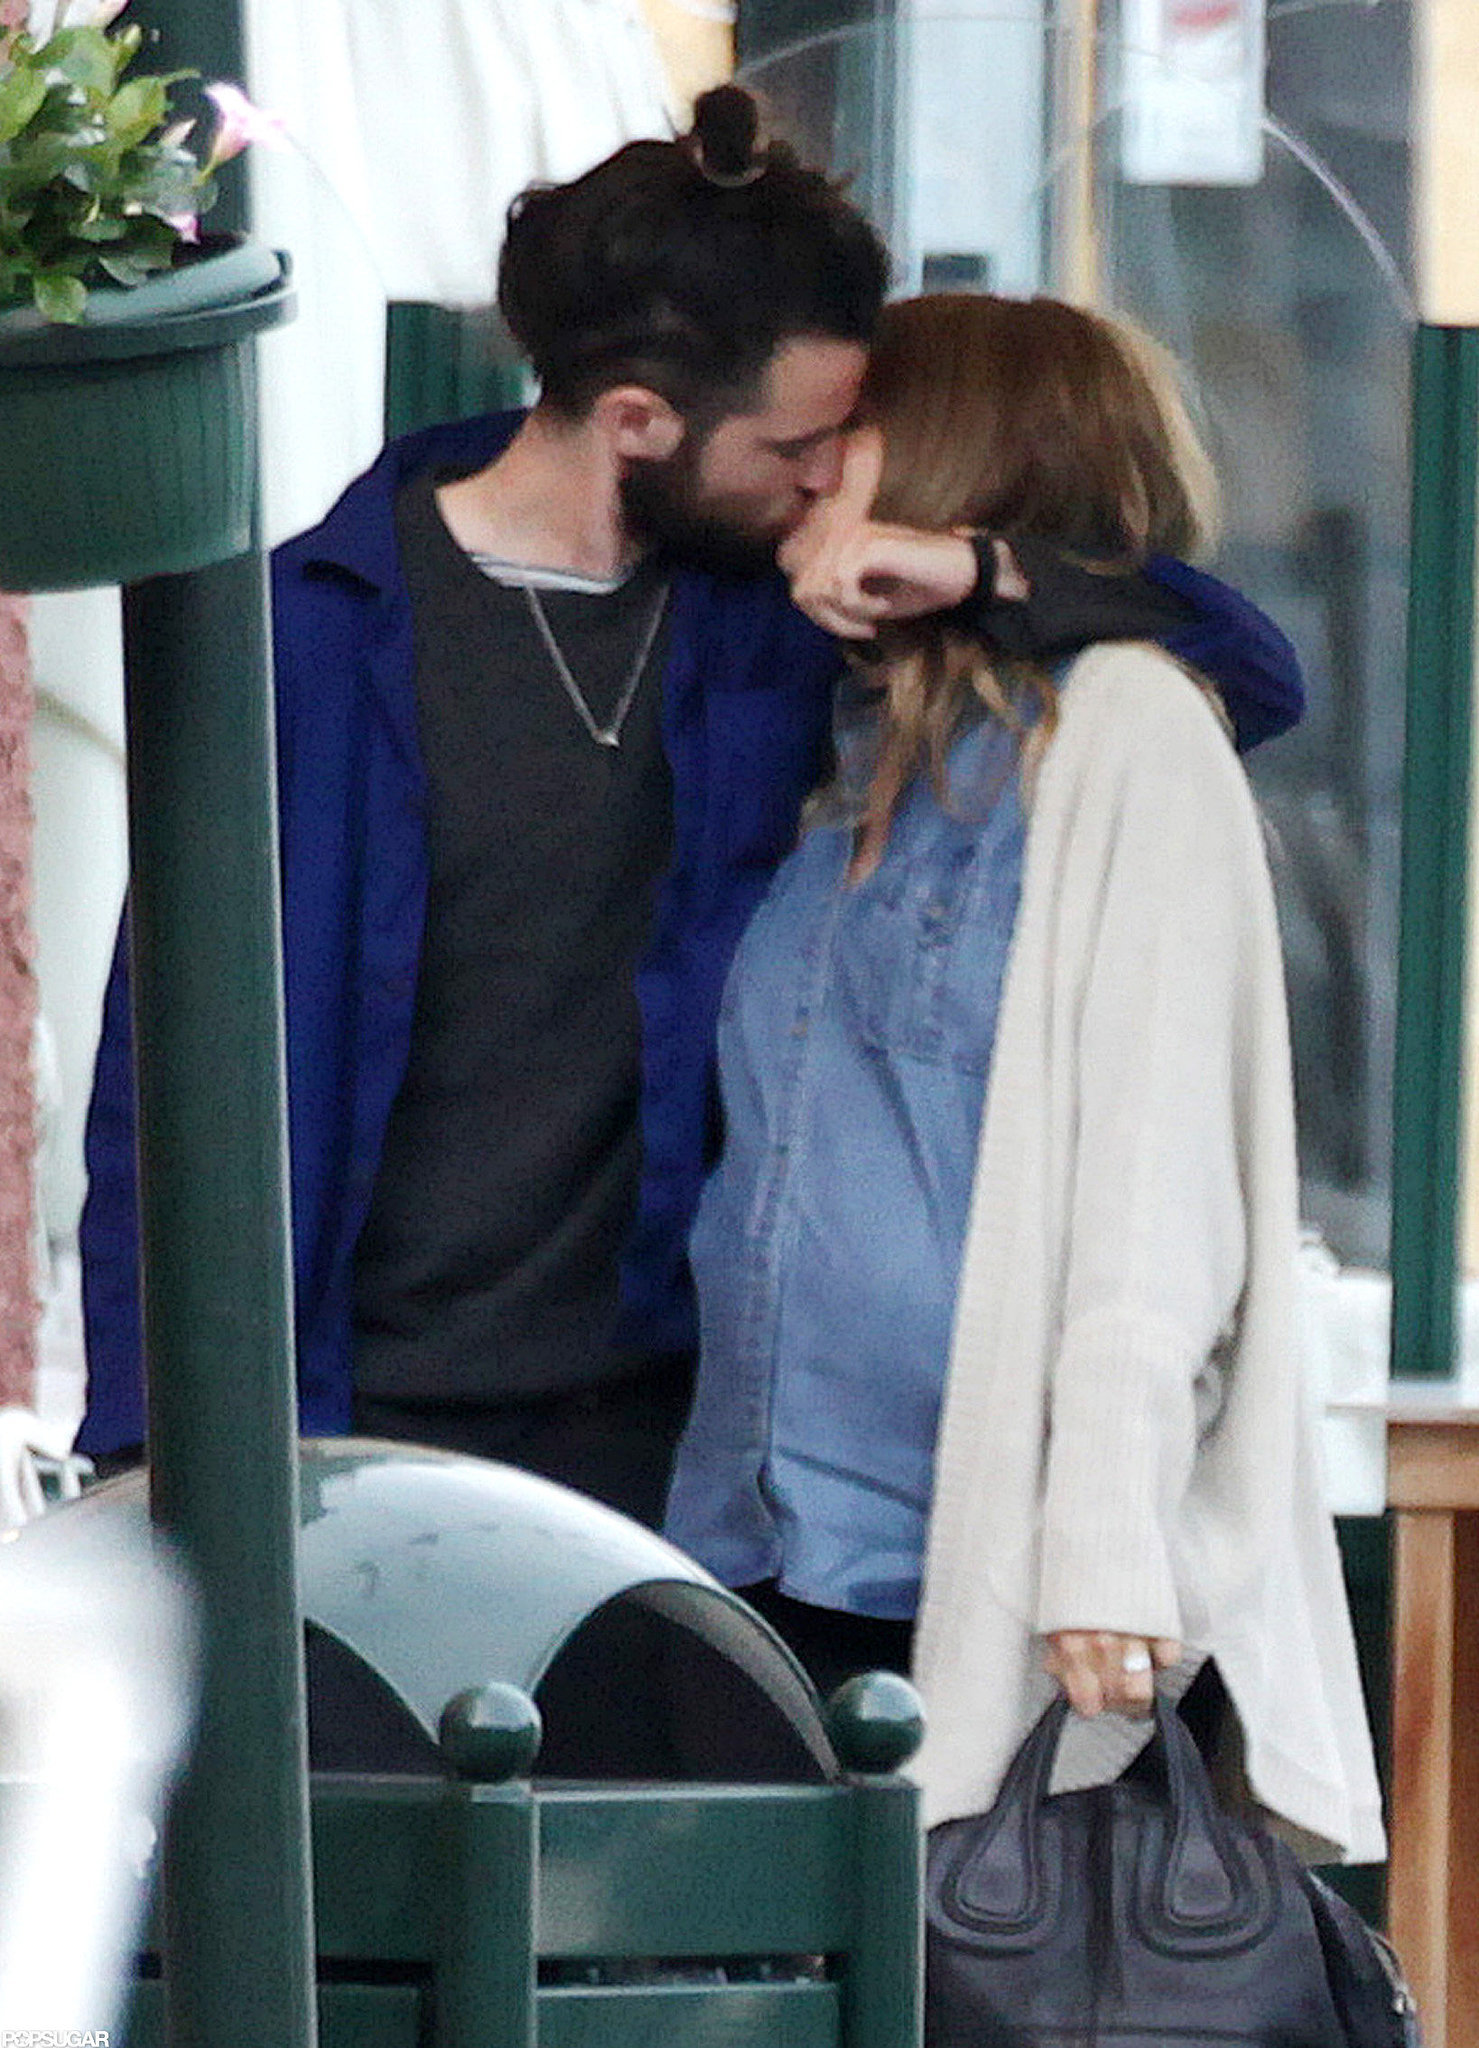 Tom Sturridge and Sienna Miller shared a passionate kiss on a May 2012 getaway to Portofino, Italy.